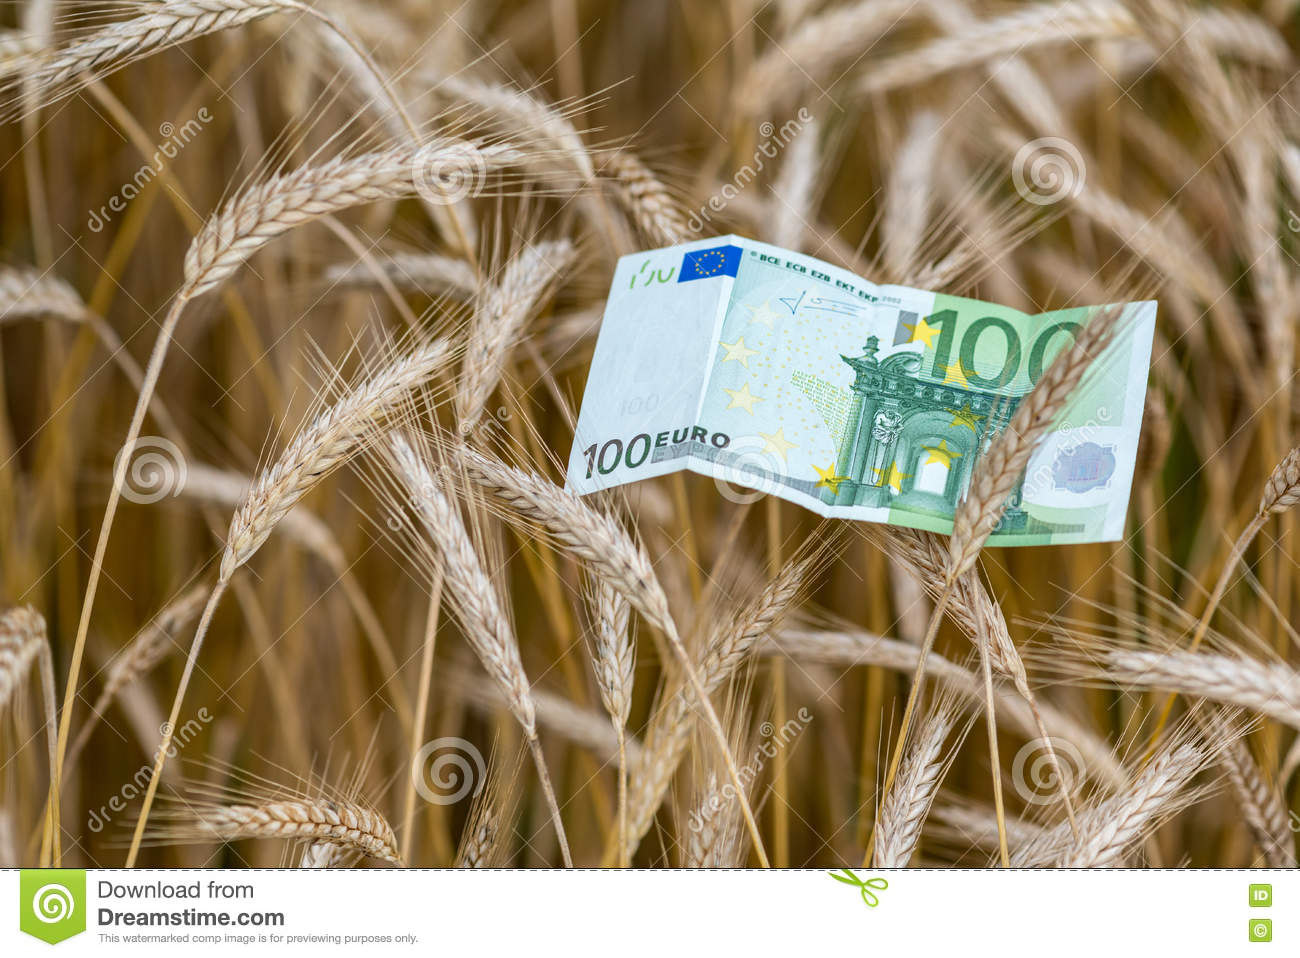 Euro banknote and wheat